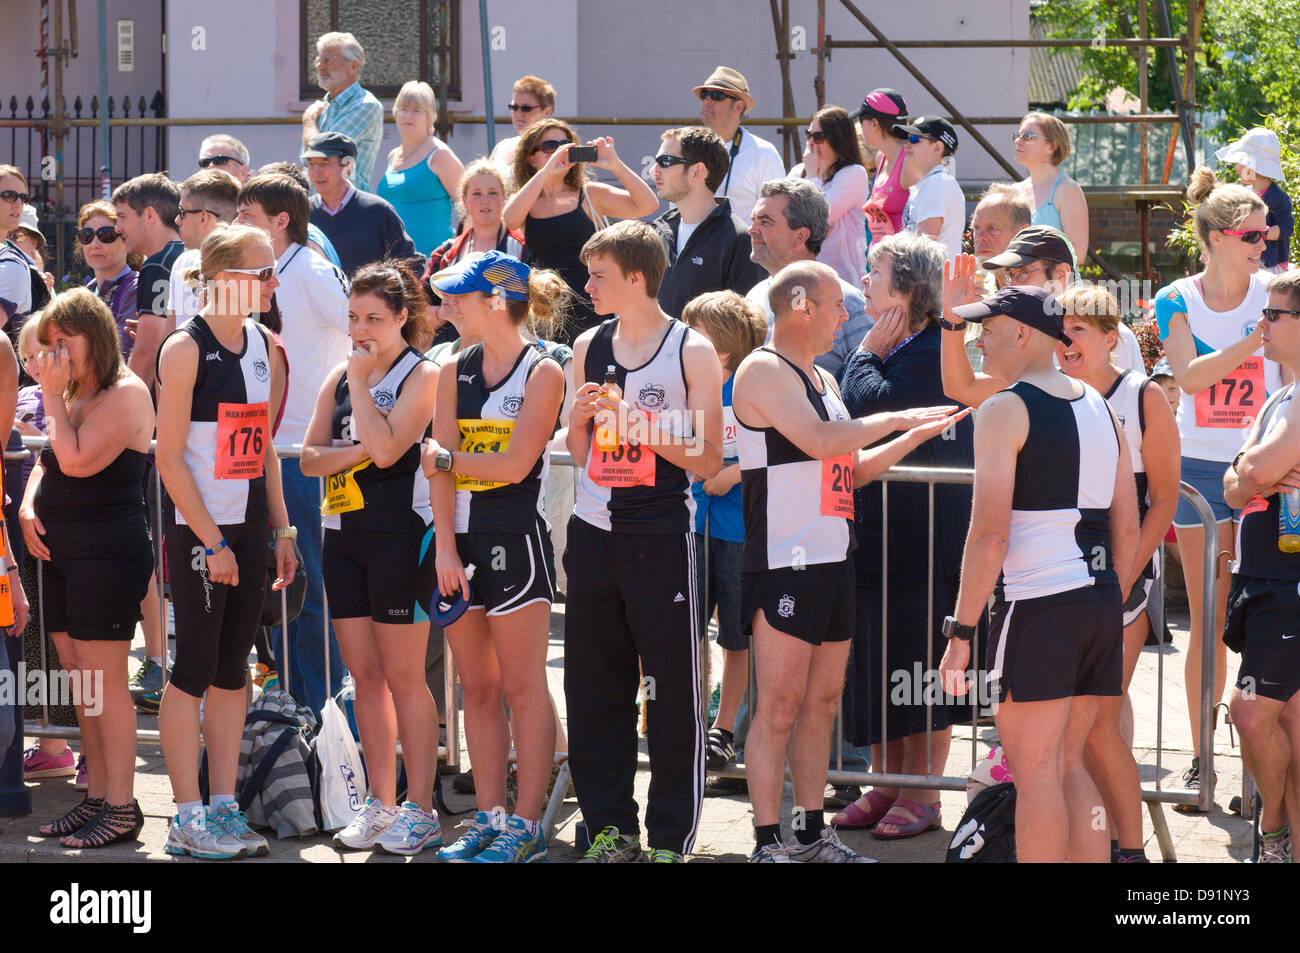 Llanwrtyd Wells, UK. 8th June 2013. Competitors wait for the Start. Over 400 runners compete against 65 horses in the Man V Horse 23 mile marathon, over gruelling mountainous terrain.The event was conceived by Gordon Green at his pub the Neuadd Arms in 1980 upon overhearing a discussion whether a man was equal to a horse running cross country over distance. The cash prize for beating a horse was increased each year by £1,000 until Huw Lobb won £25,000 in 2004 beating the first horse by 2 mins with a time of 2:05:19. Credit: Graham M. Lawrence/Alamy Live News. Stock Photo